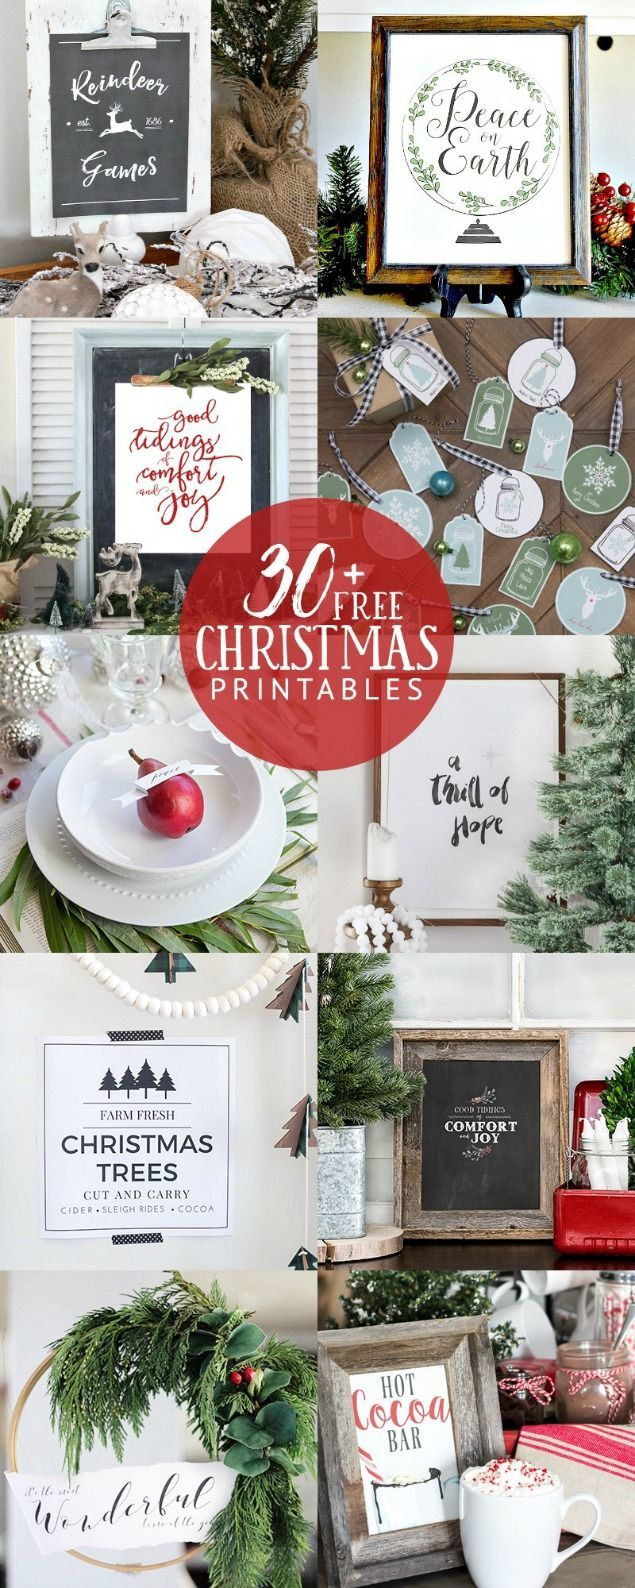 Ho ho holiday printouts to color - Gorgeous Collection Of Free Christmas Printables There S Something For Every Room Such An Easy